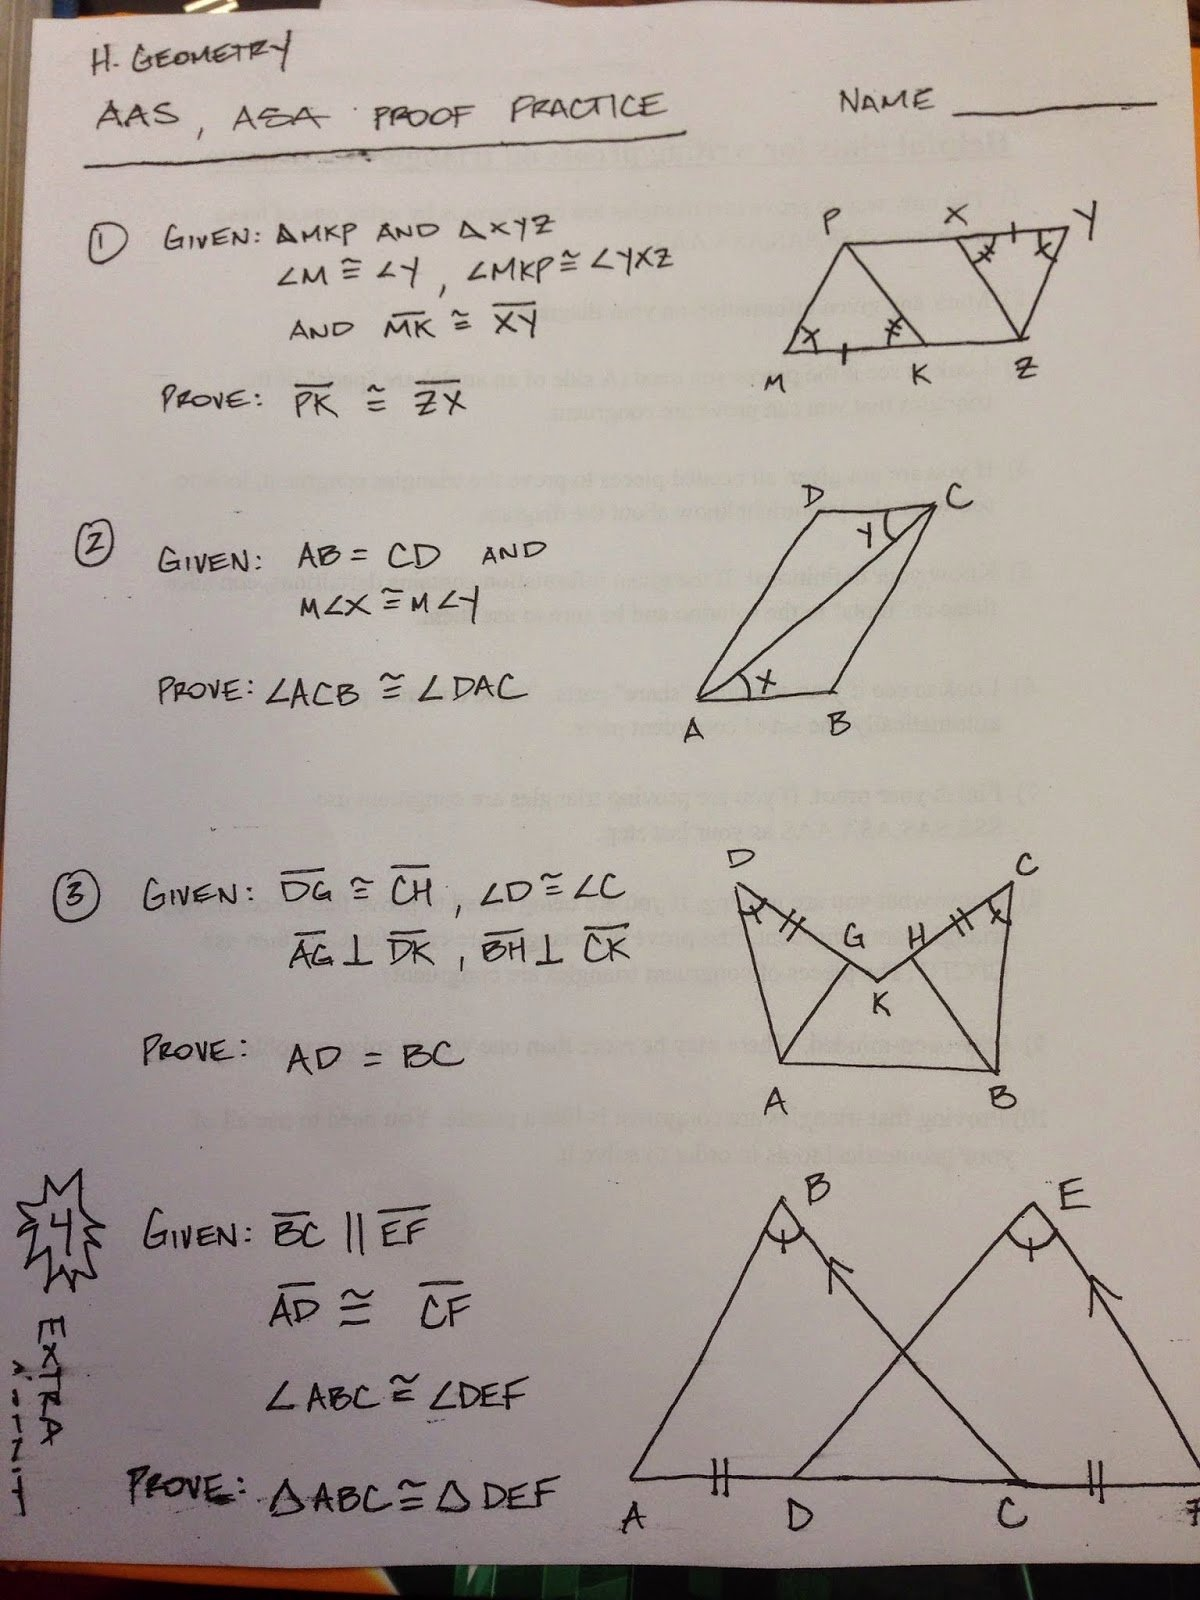 50 Geometry Proof Practice Worksheet